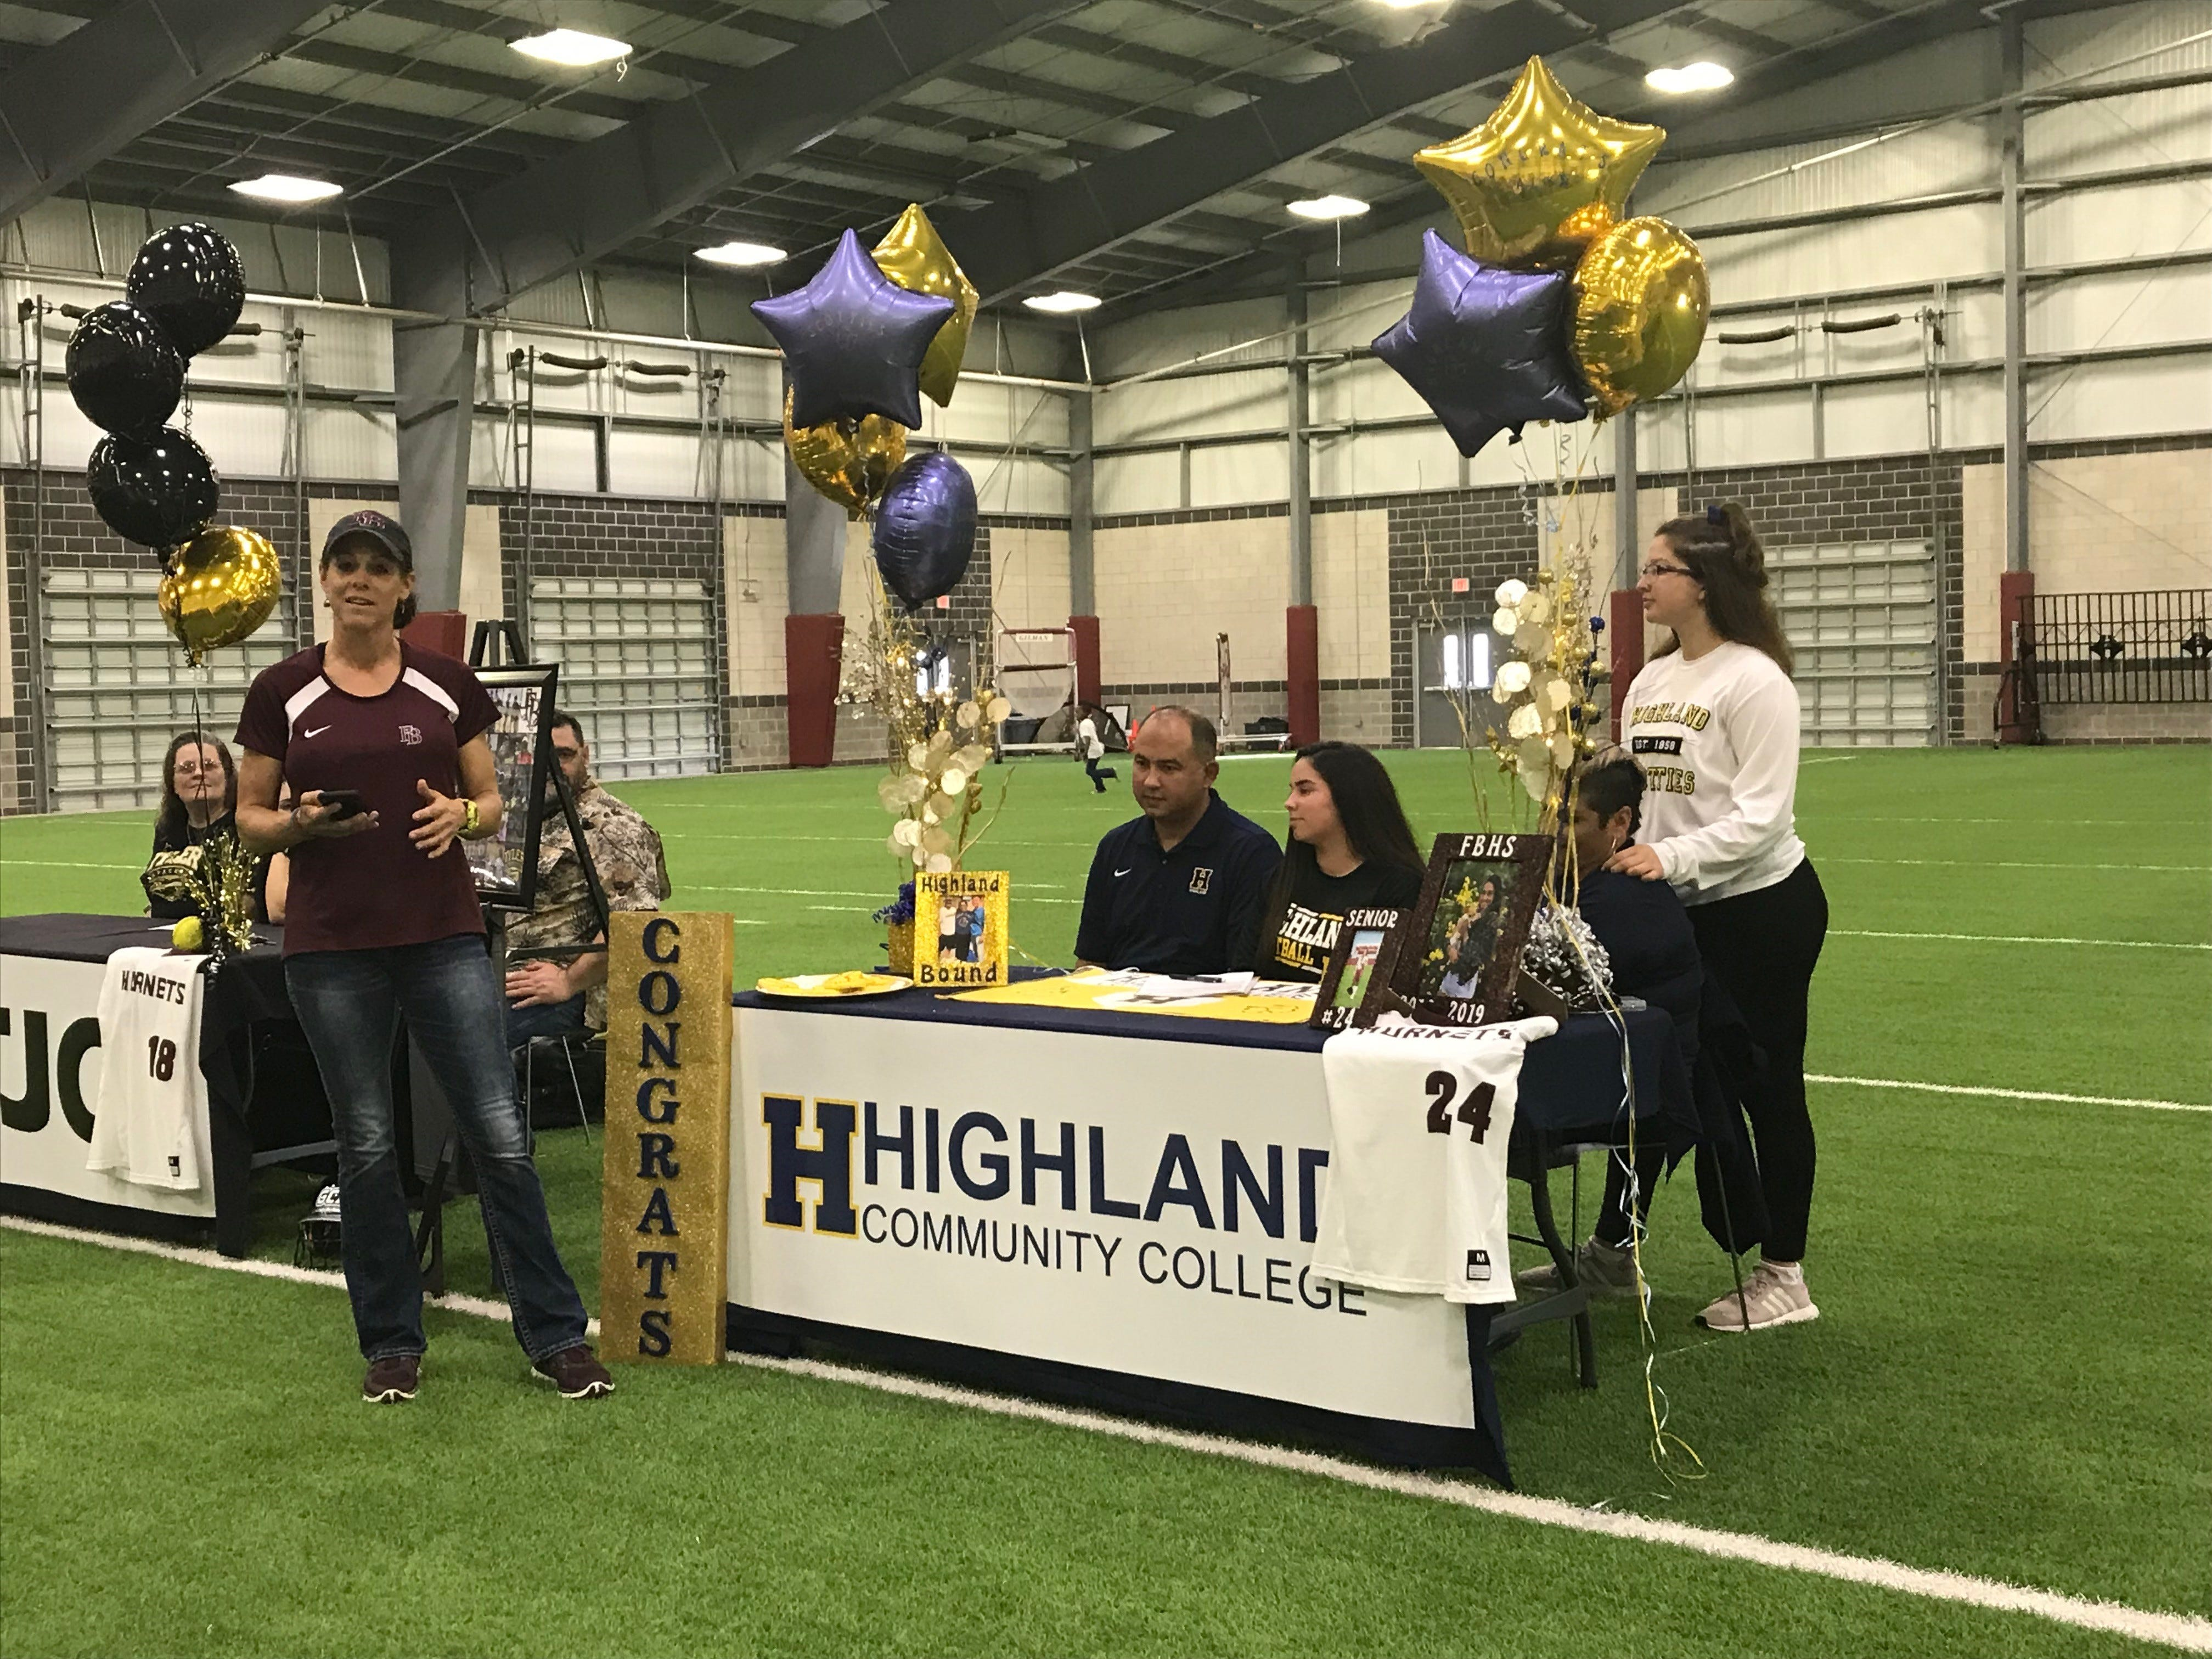 Alyxandria Salinas signed with Highland Community College on Wednesday, Feb. 6 at Flour Bluff's athletic facility.